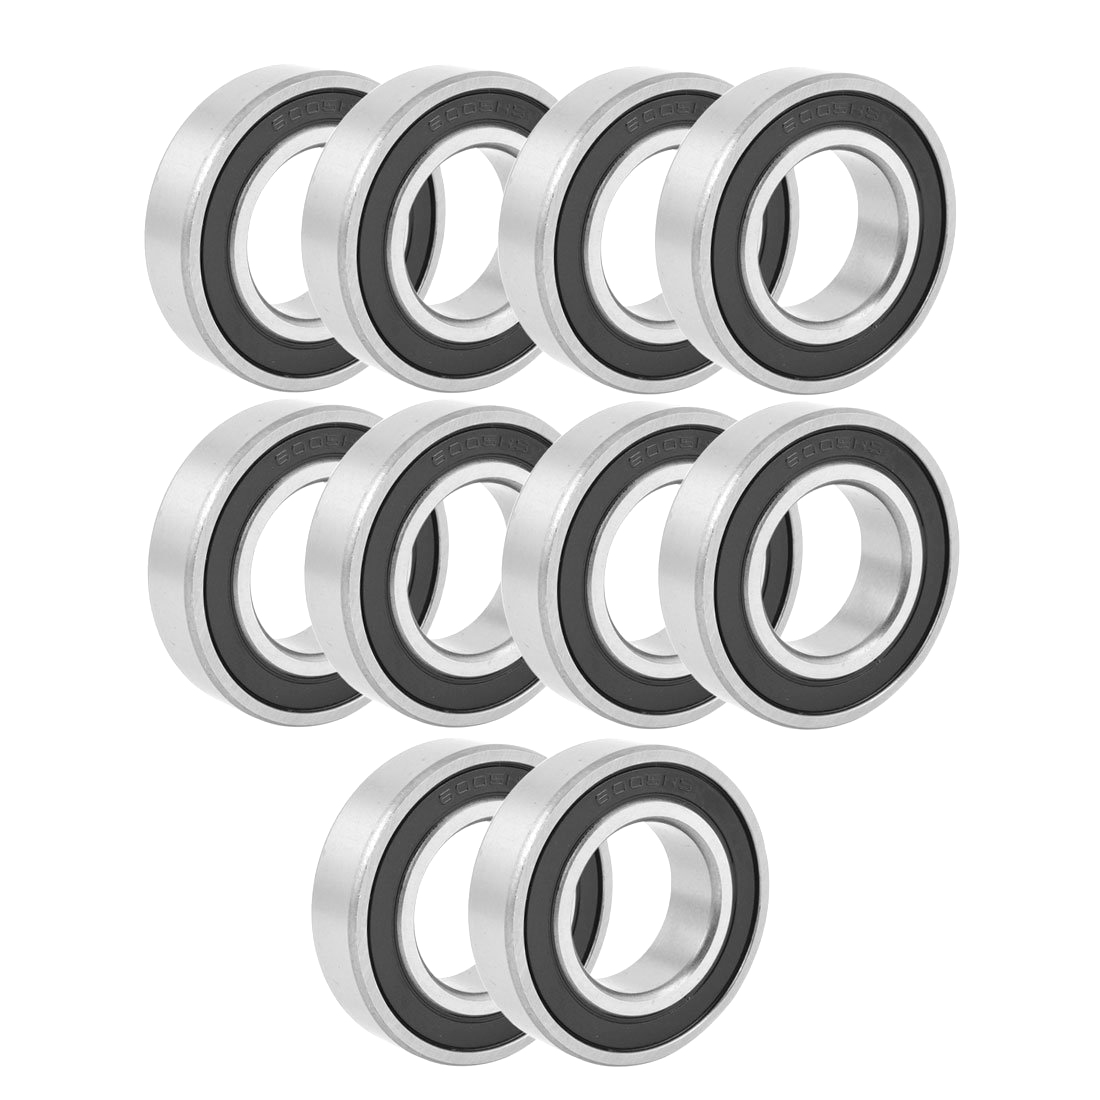 Sealing Deep Groove Radial Ball Bearing 6005RS 25mmx47mmx12mm 10PCS kb035cpo sb035cpo prb035 radial contact ball bearing size 88 9 104 775 7 938mm